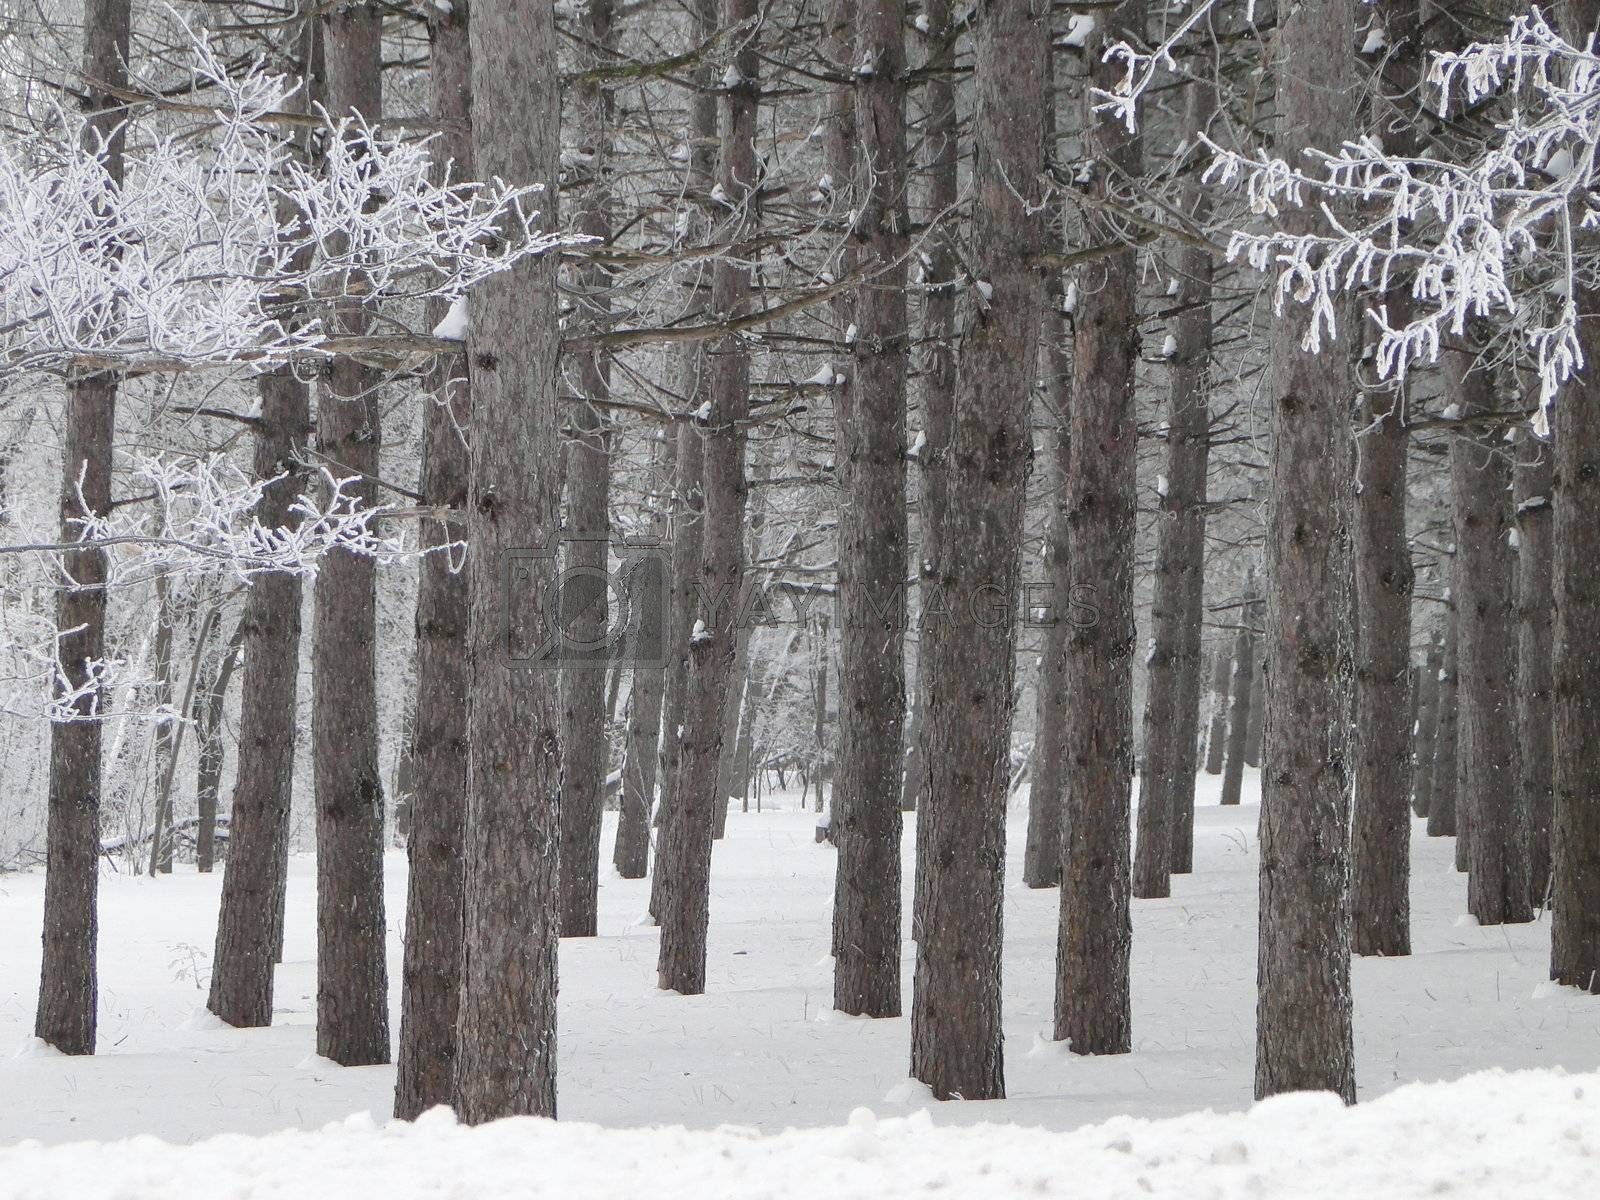 Icy crystal morning in beautiful pine tree forest